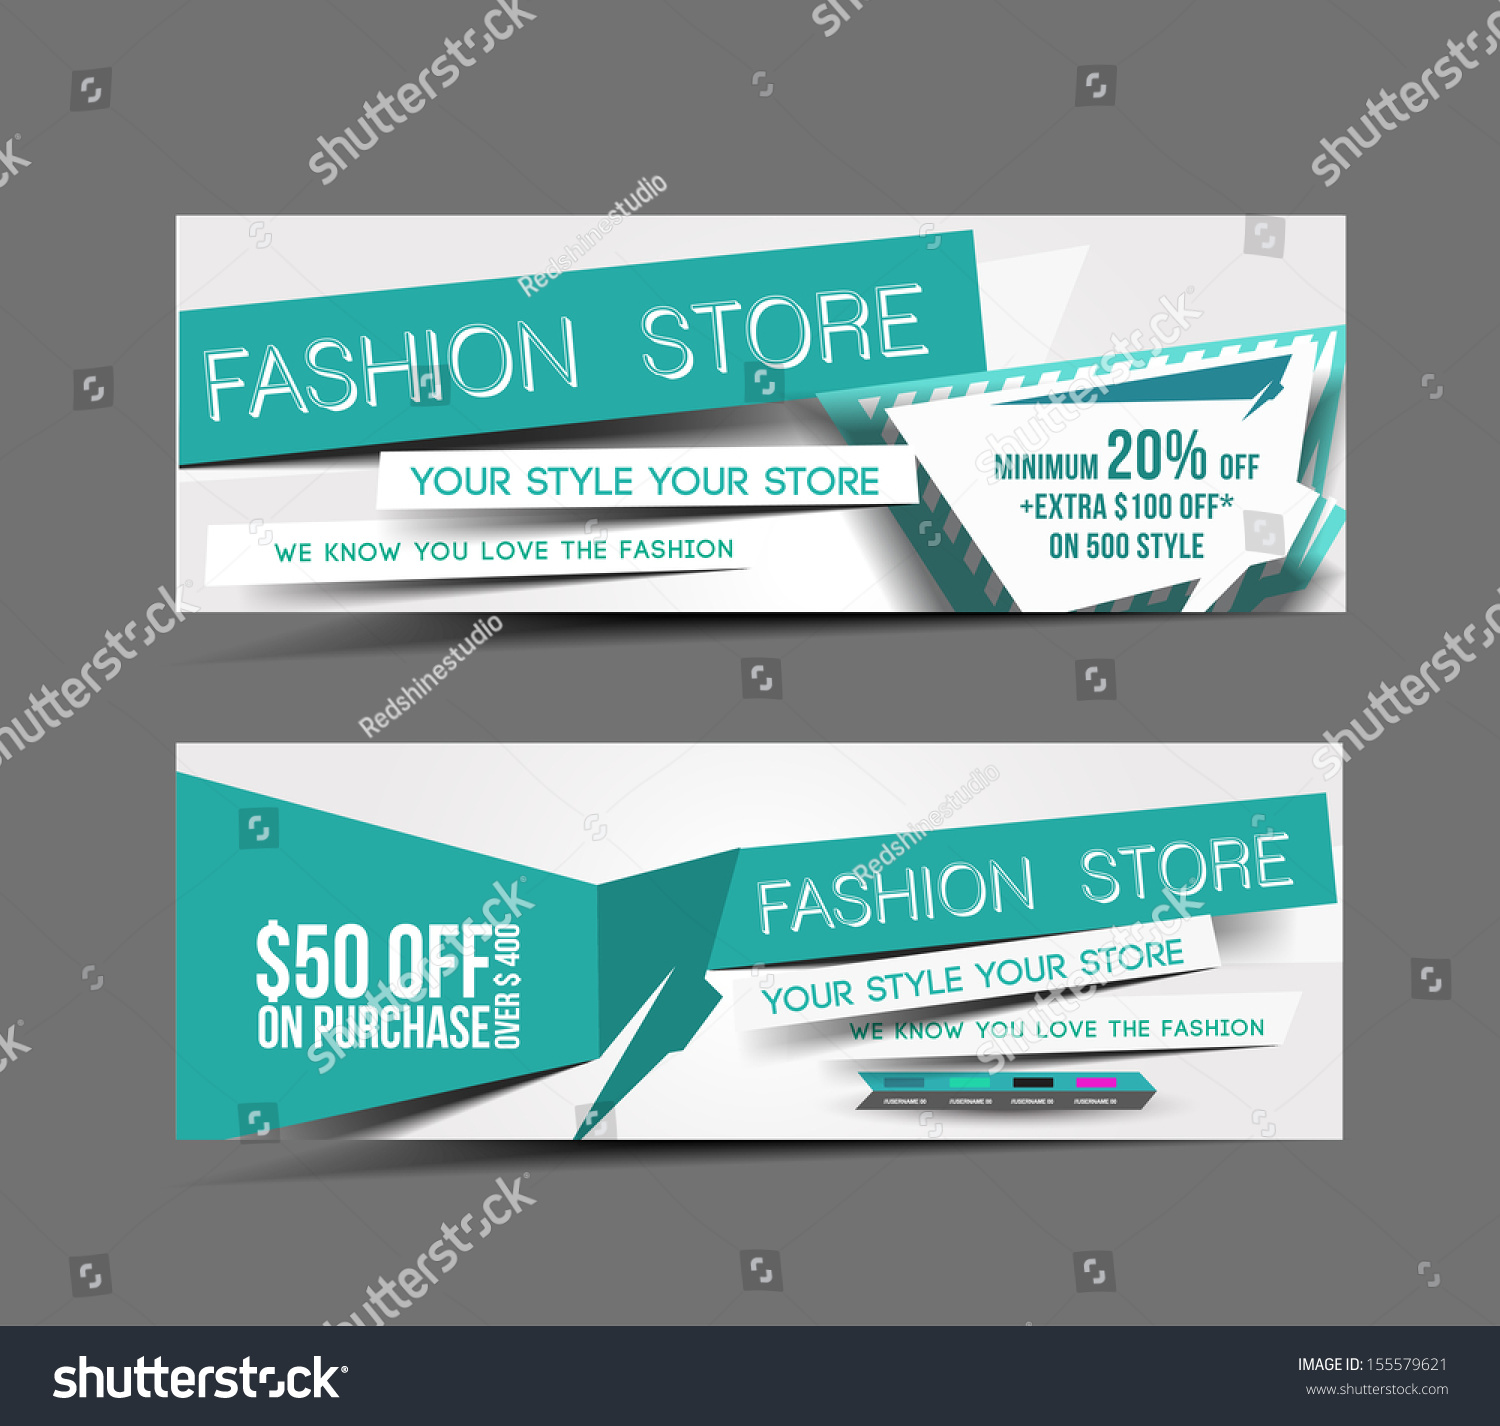 Fashion Store Web Banner Header Layout Stock Vector. Theme Park Signs. Filigree Lettering. Fact Signs. Fruit Shop Banners. Dymo Label. Droopy Face Signs Of Stroke. Coyote Hunting Decals. Student Accommodation Banners